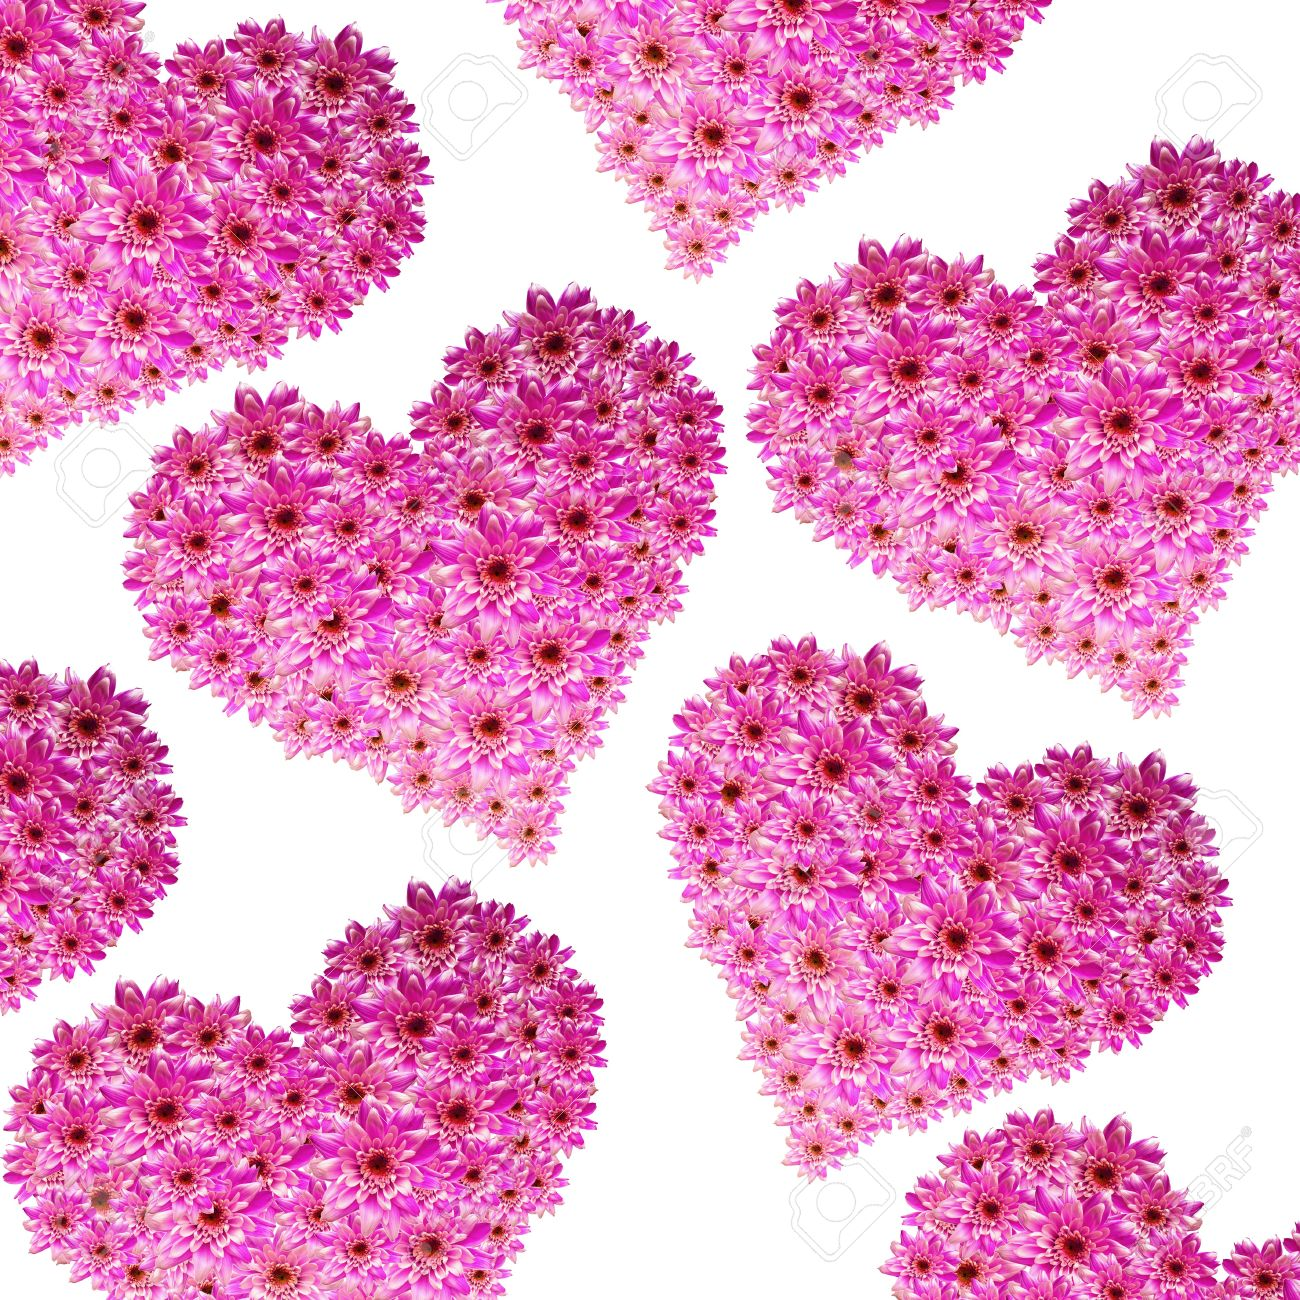 Hearts made of pink flowers stock photo picture and royalty free hearts made of pink flowers stock photo 6384342 mightylinksfo